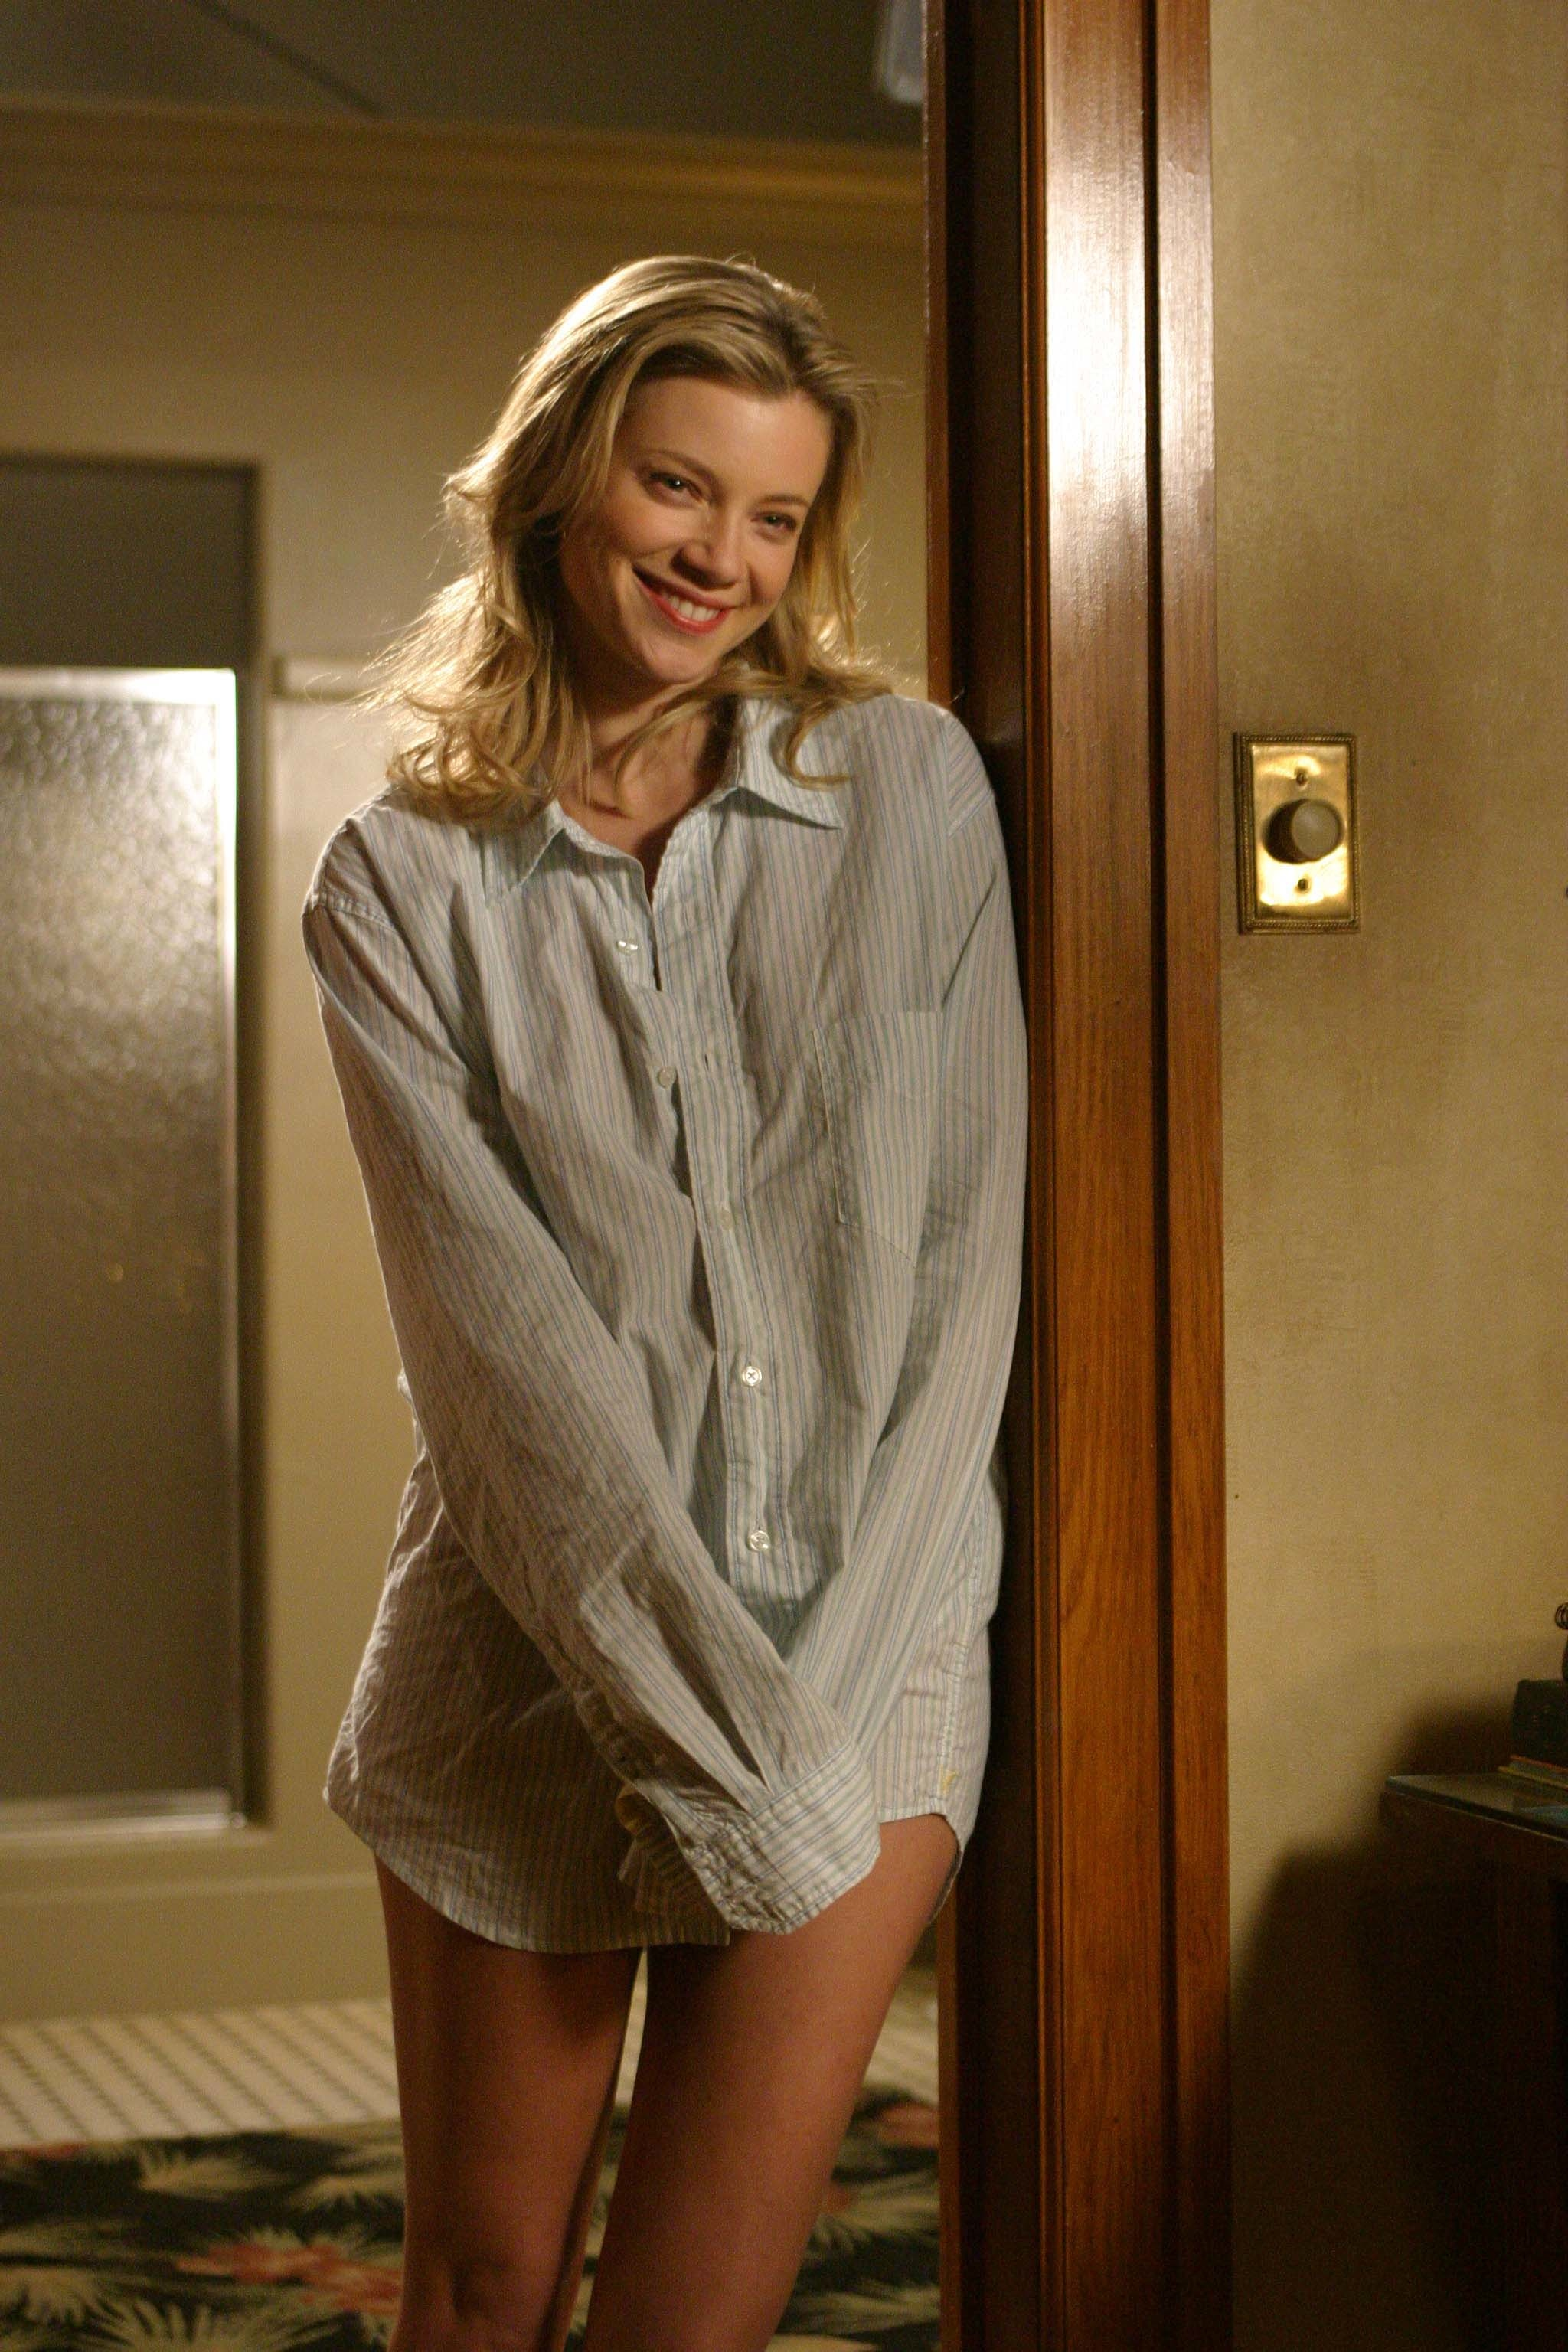 Amy Smart Hot Images amy smart - hot babes - they're babes - and they're hot!